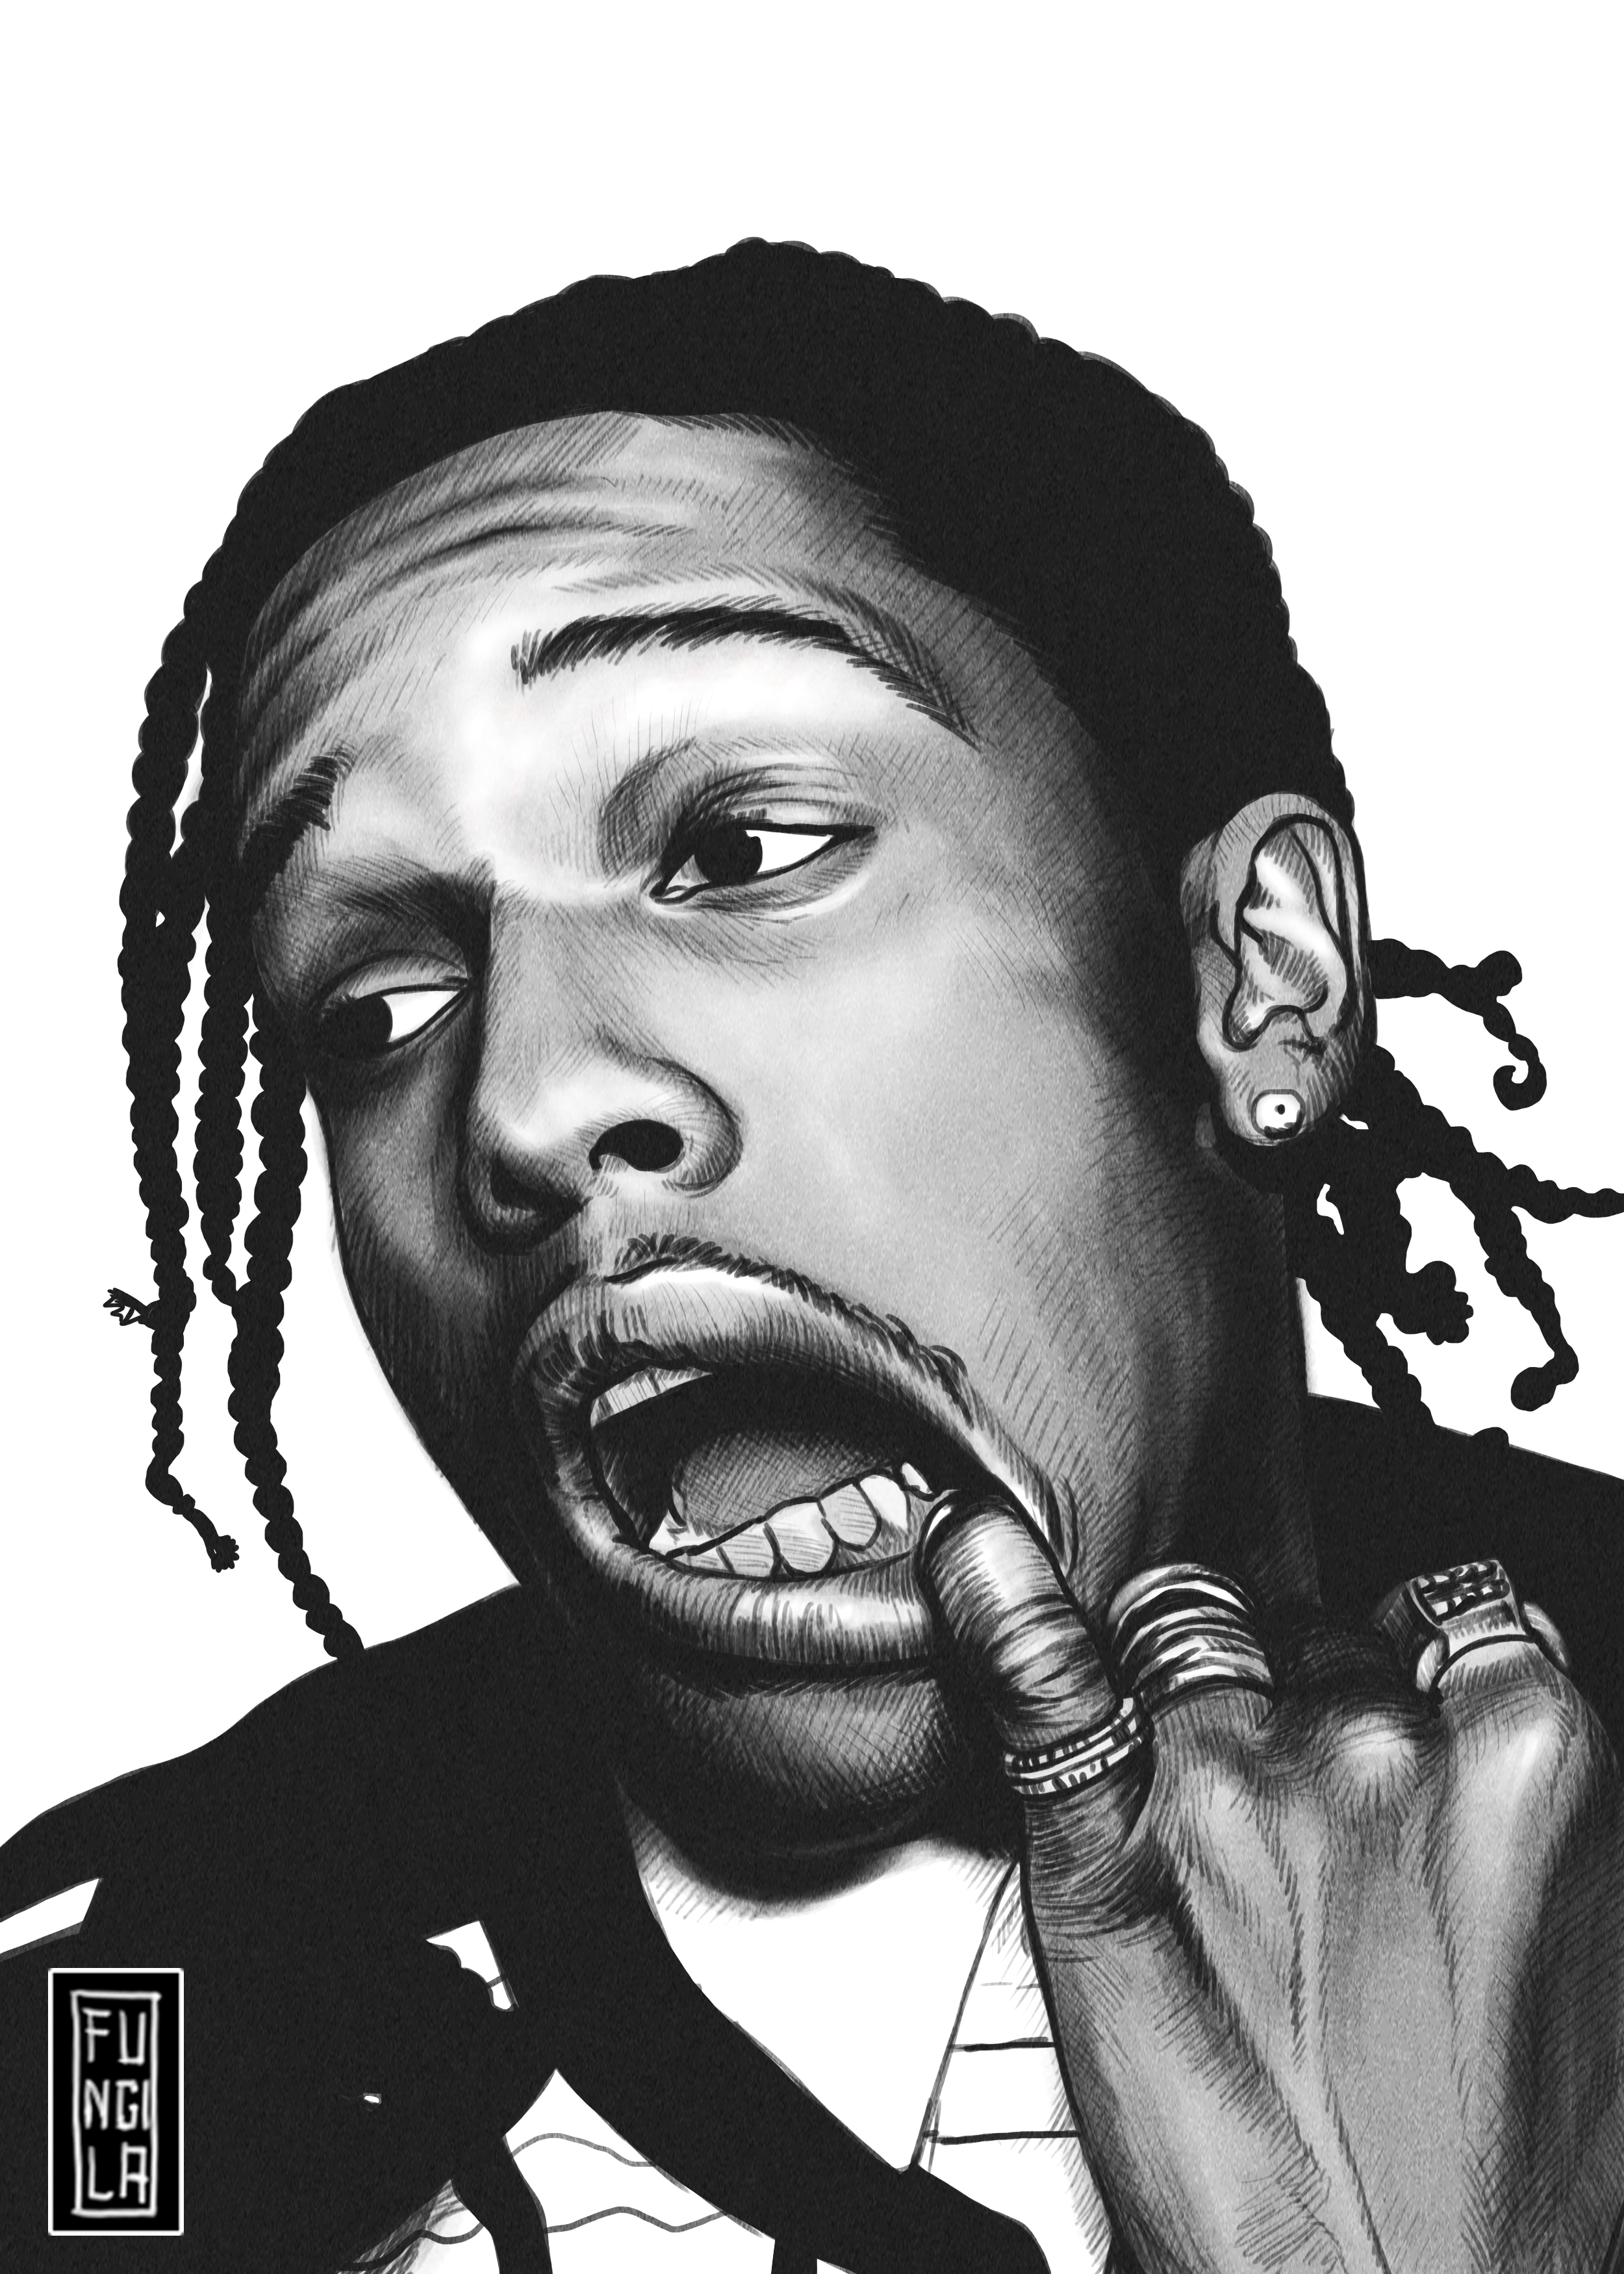 iPhone 7Plus ASAP Rocky Wallpapers - Top Free iPhone 7Plus